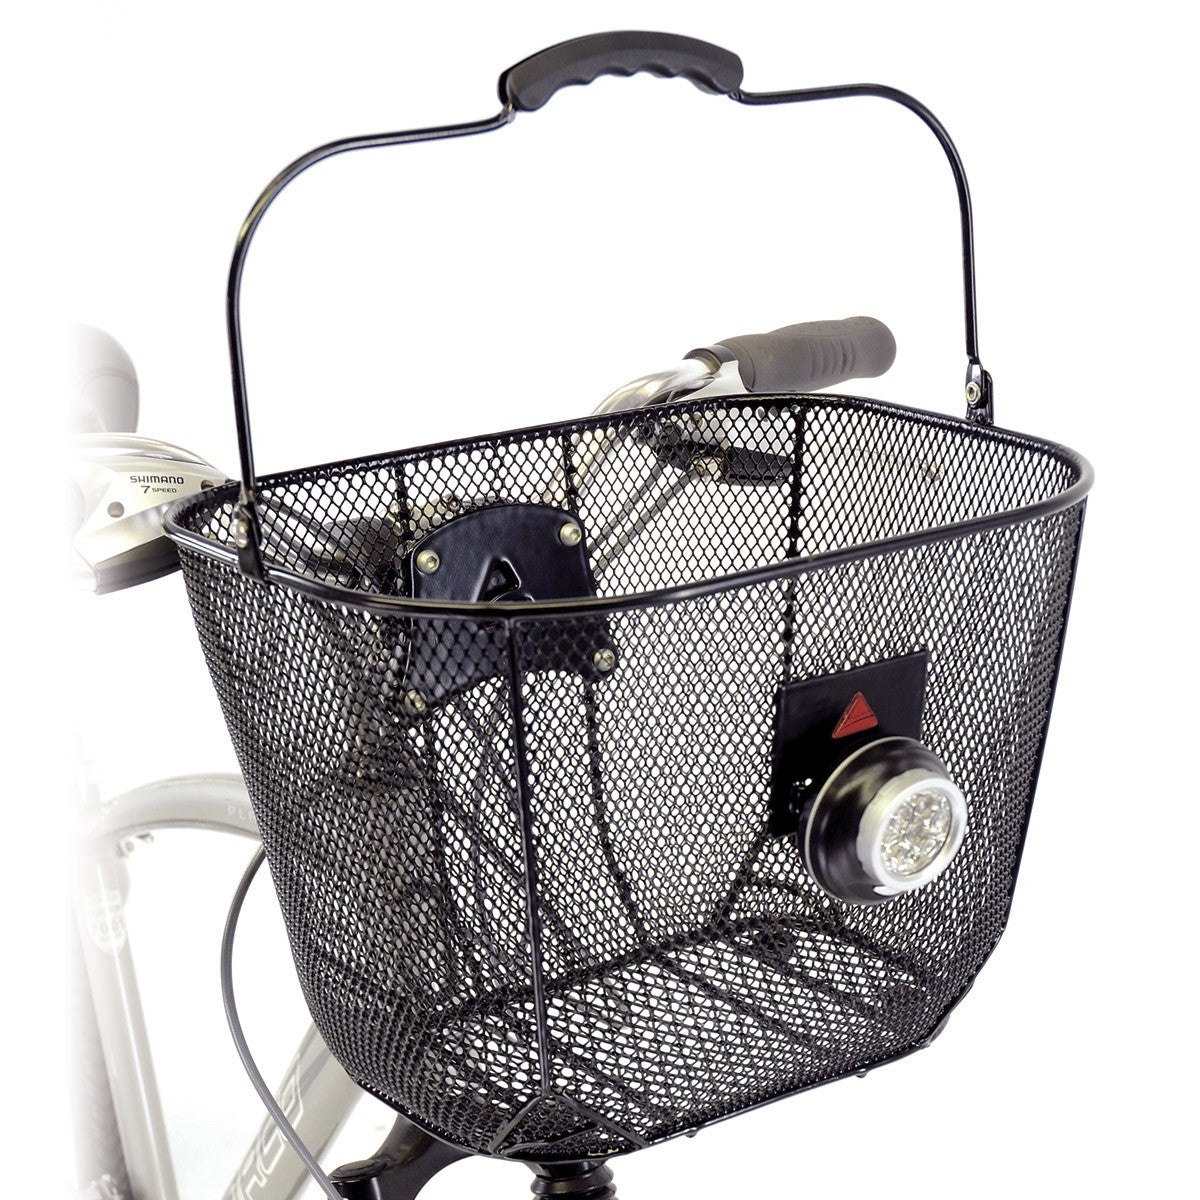 Axiom Fresh Mesh DLX quick release Basket